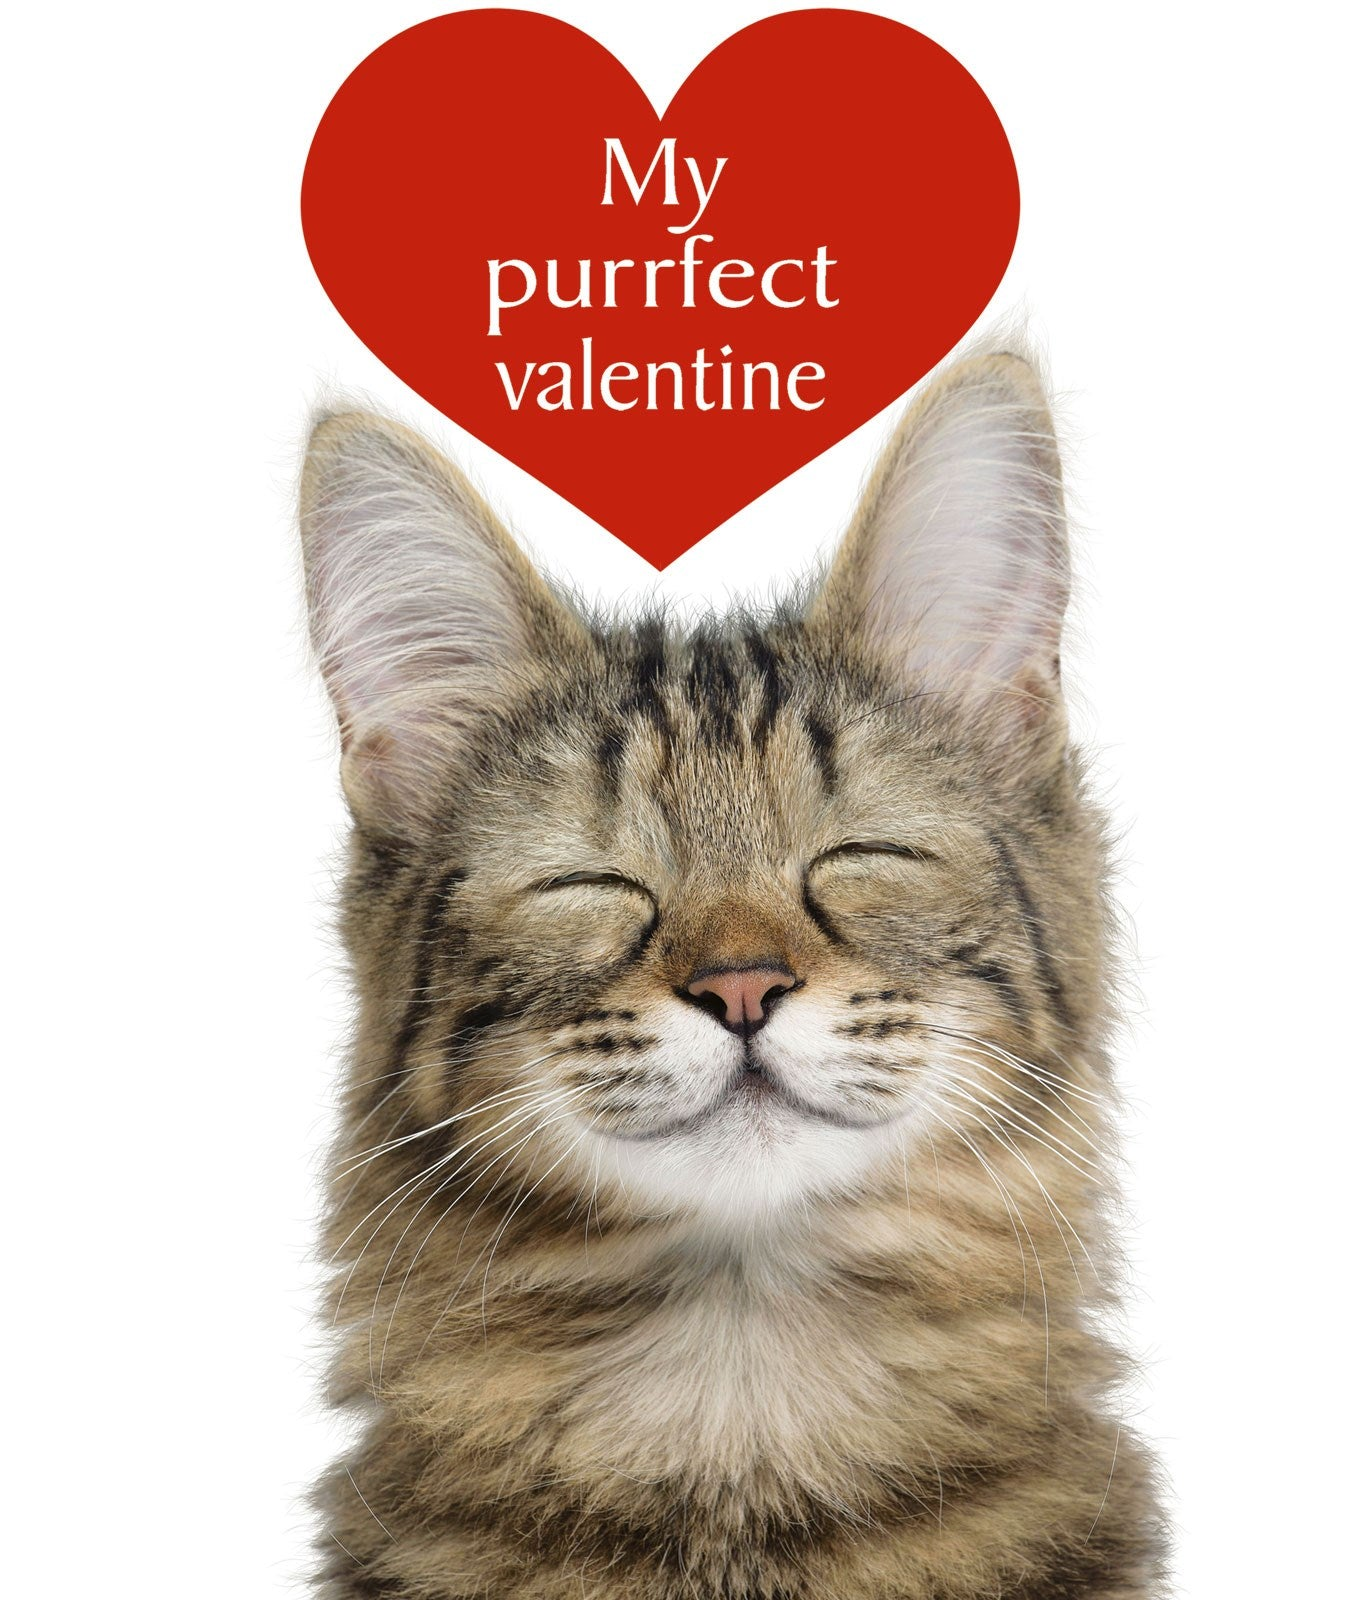 Purrfect Valentine Cat Greetings Card